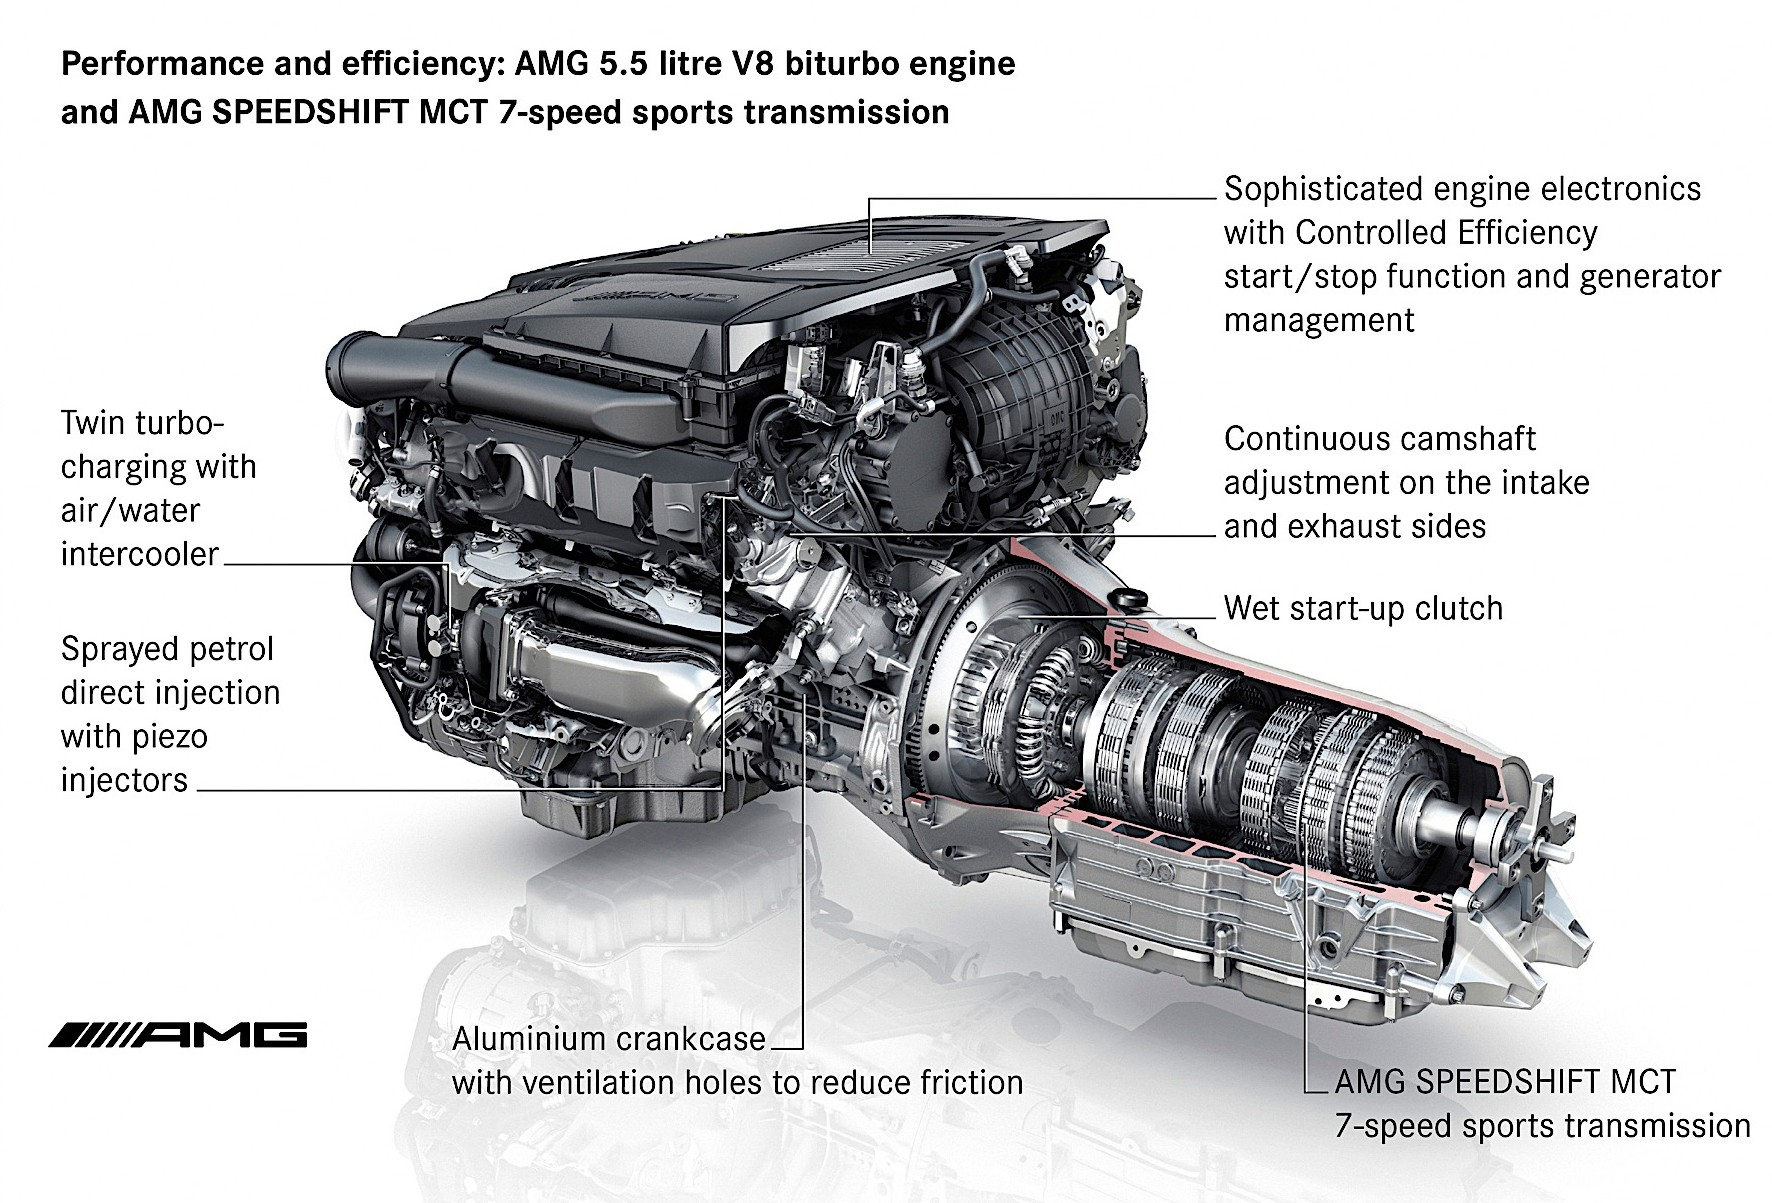 Mercedes Amg S Mct Transmission Explained In Layman S Terms Autoevolution